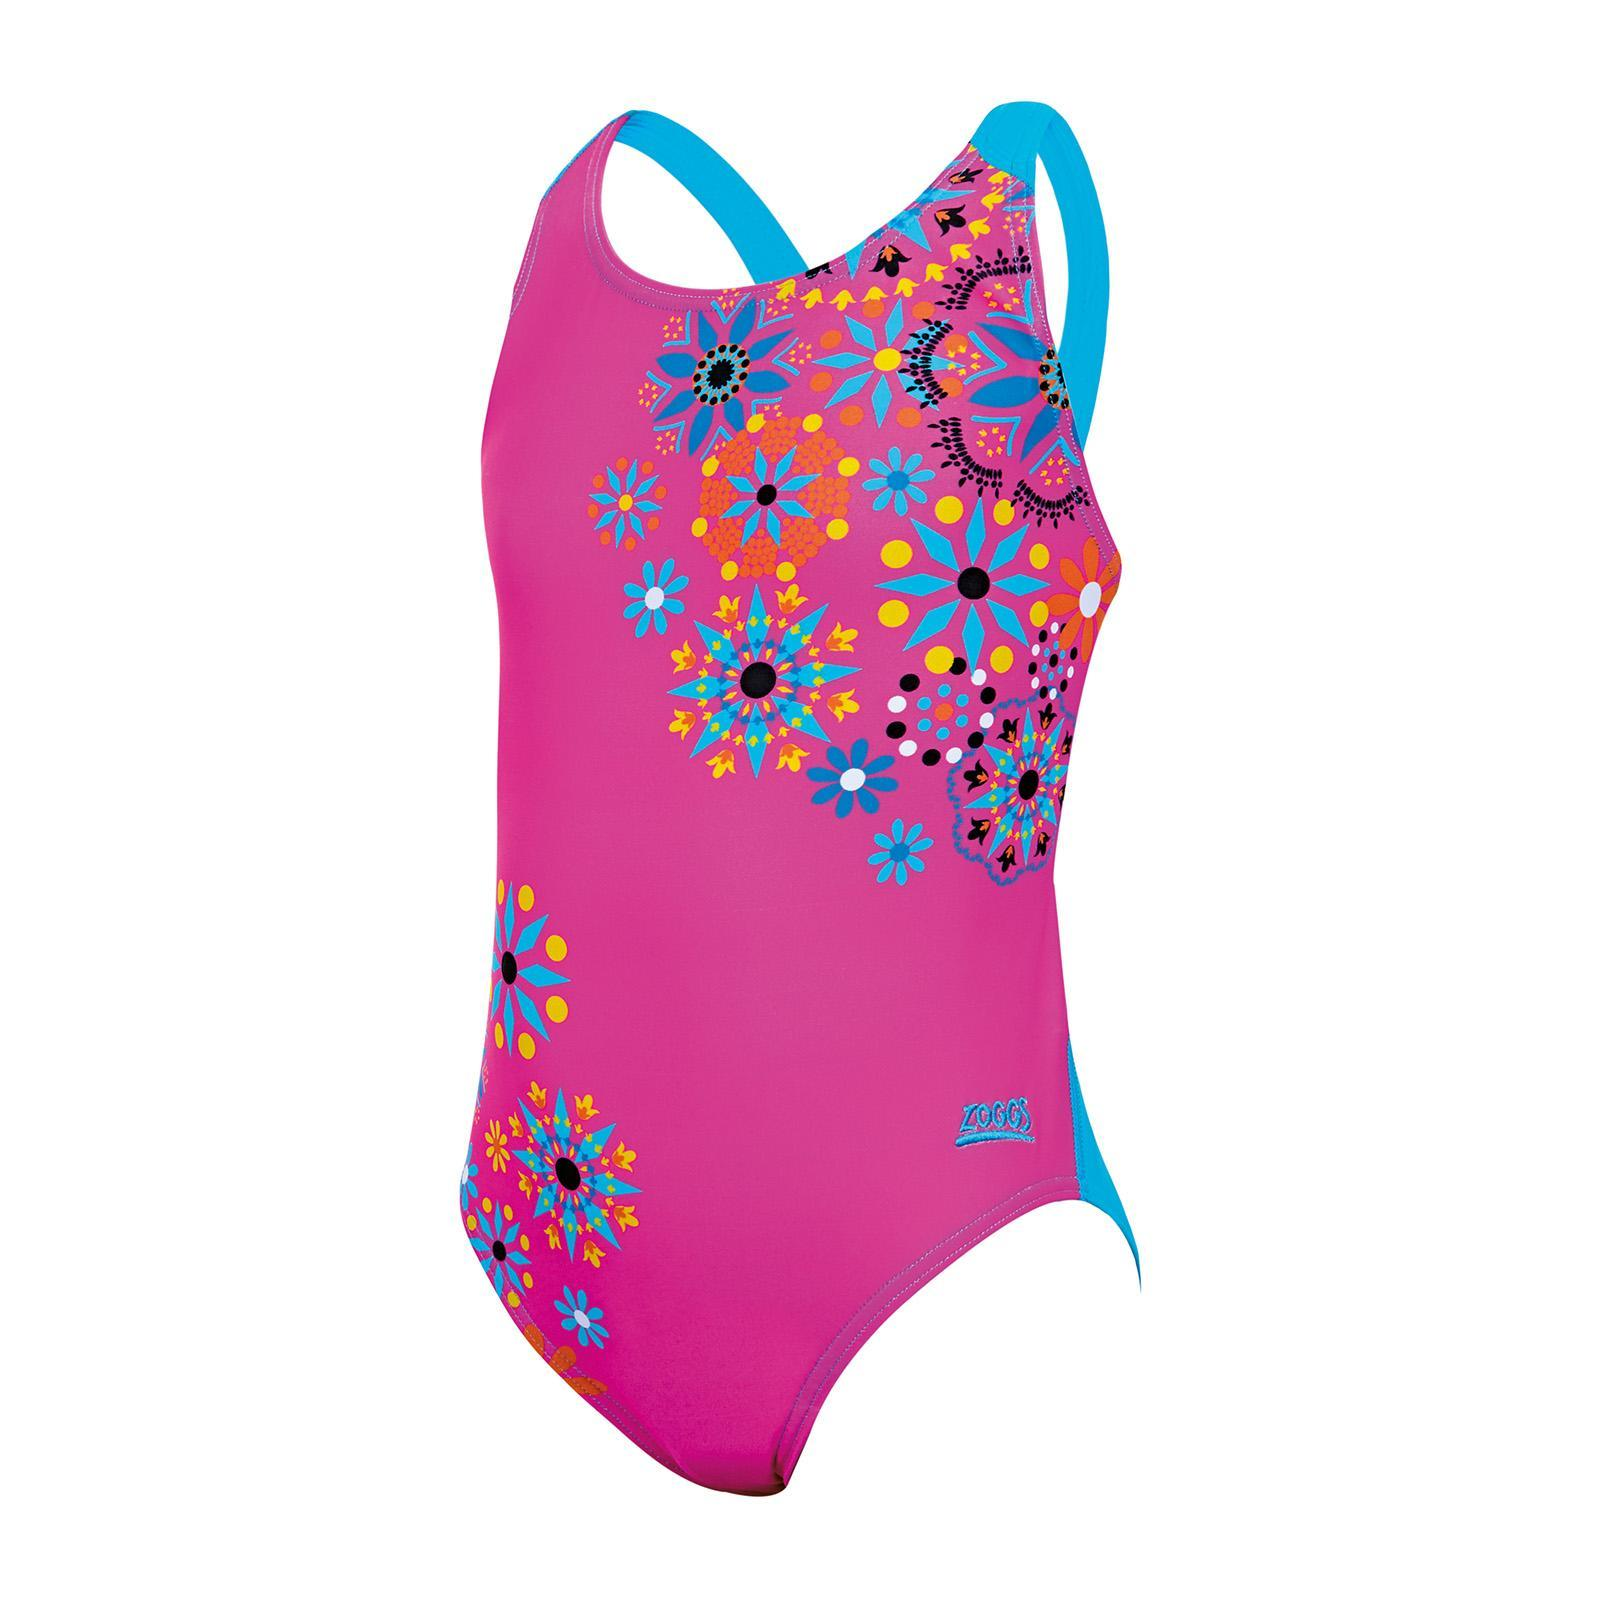 419f96a157 Latest Zoggs Girls Swimsuits Products | Enjoy Huge Discounts | Lazada SG